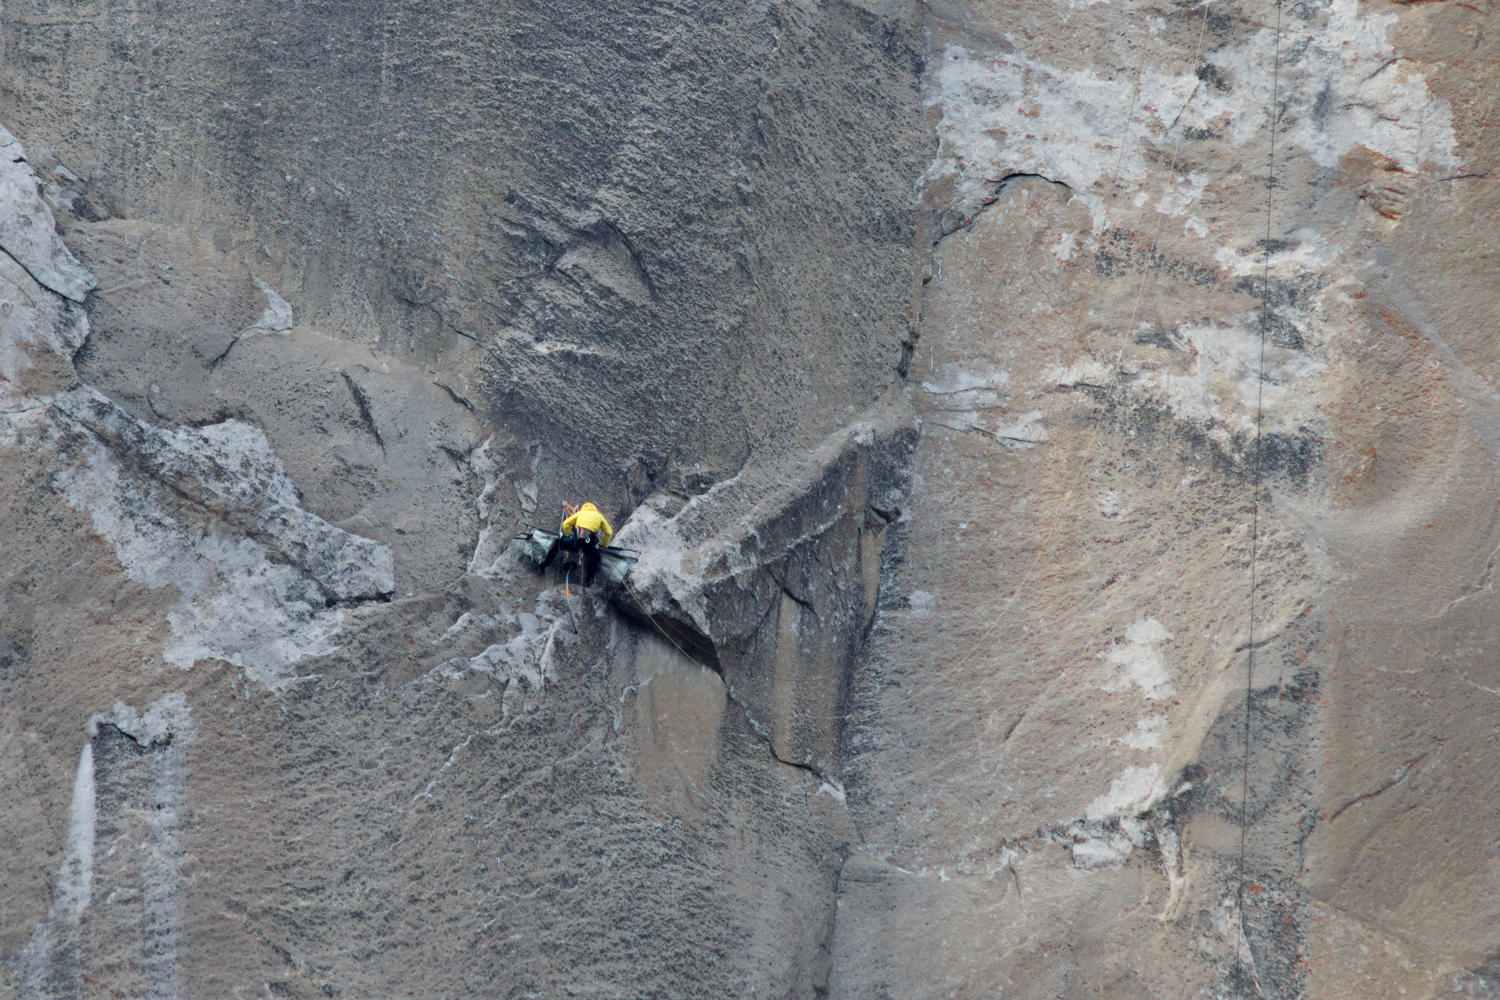 Tommy Caldwell (in yellow) breaking down the Portaledge to move it to the next pitch.